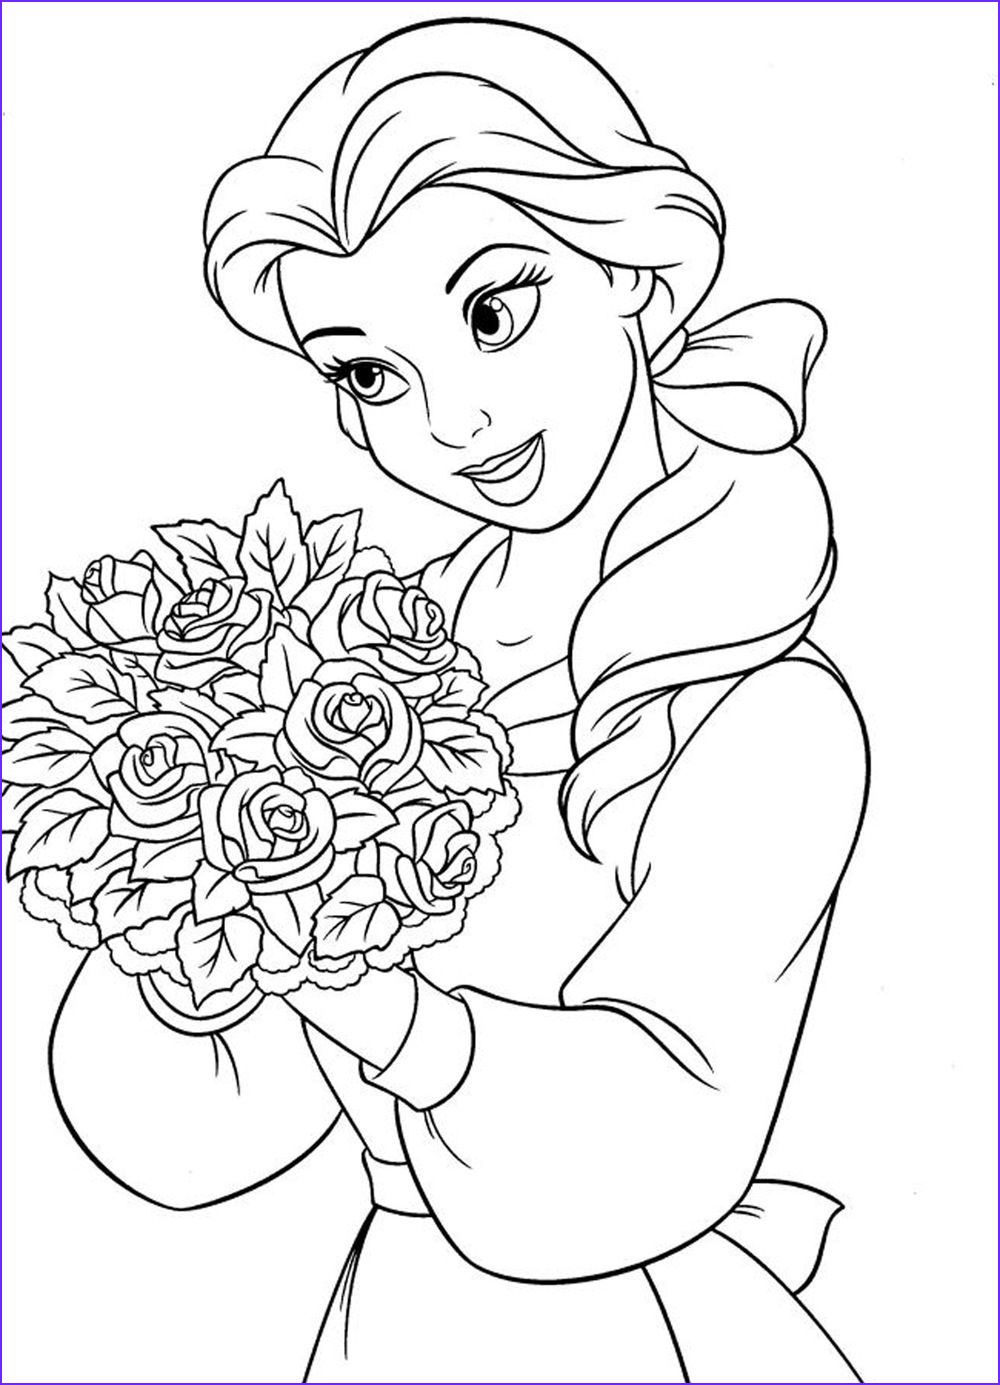 Coloring Sheet for Girls Awesome Photos Princess Coloring Pages for Girls Free